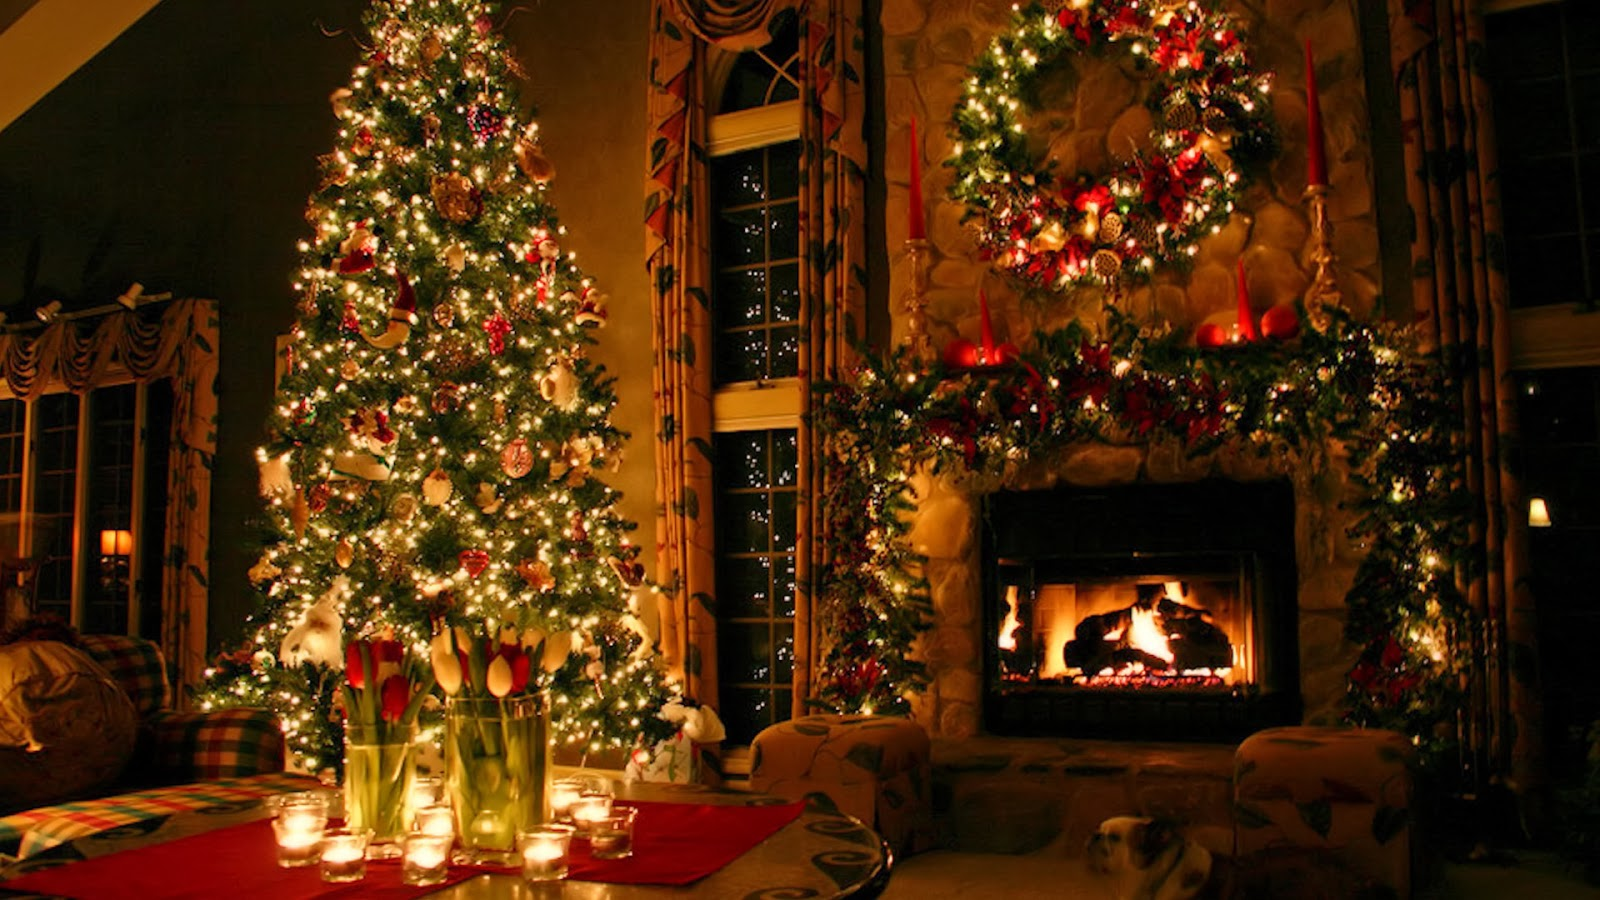 Christmas decorations ideas world top blogger for Christmas home designs